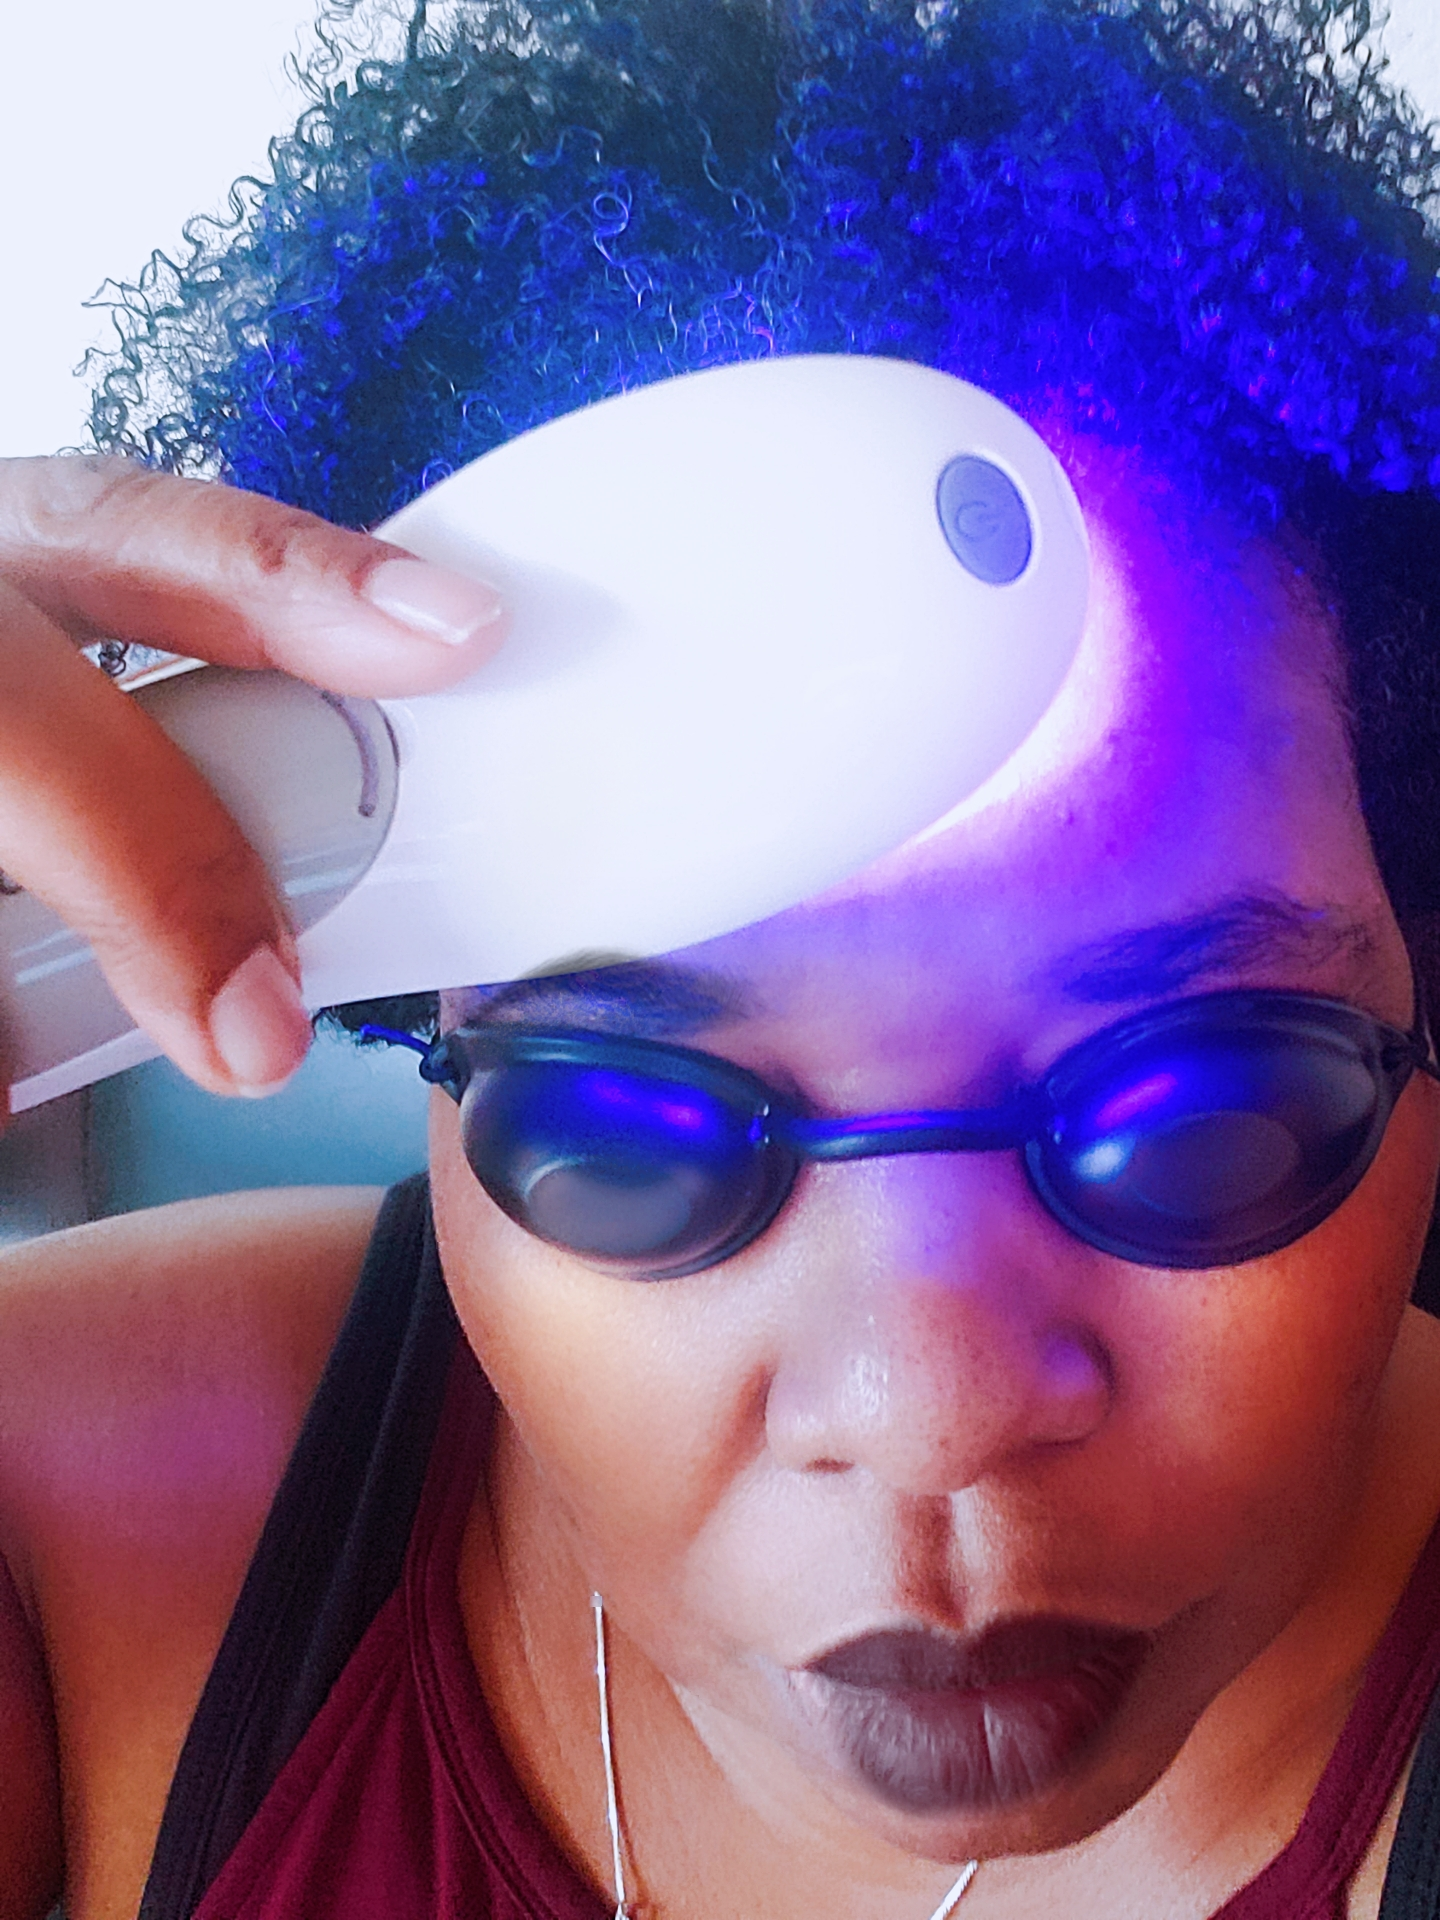 Acne Solutions Like Light Therapy Are Top Notch Like The Poly Go, A Handheld, At-Home LED Light Therapy. They beauty tool is also great for pain & wrinkles